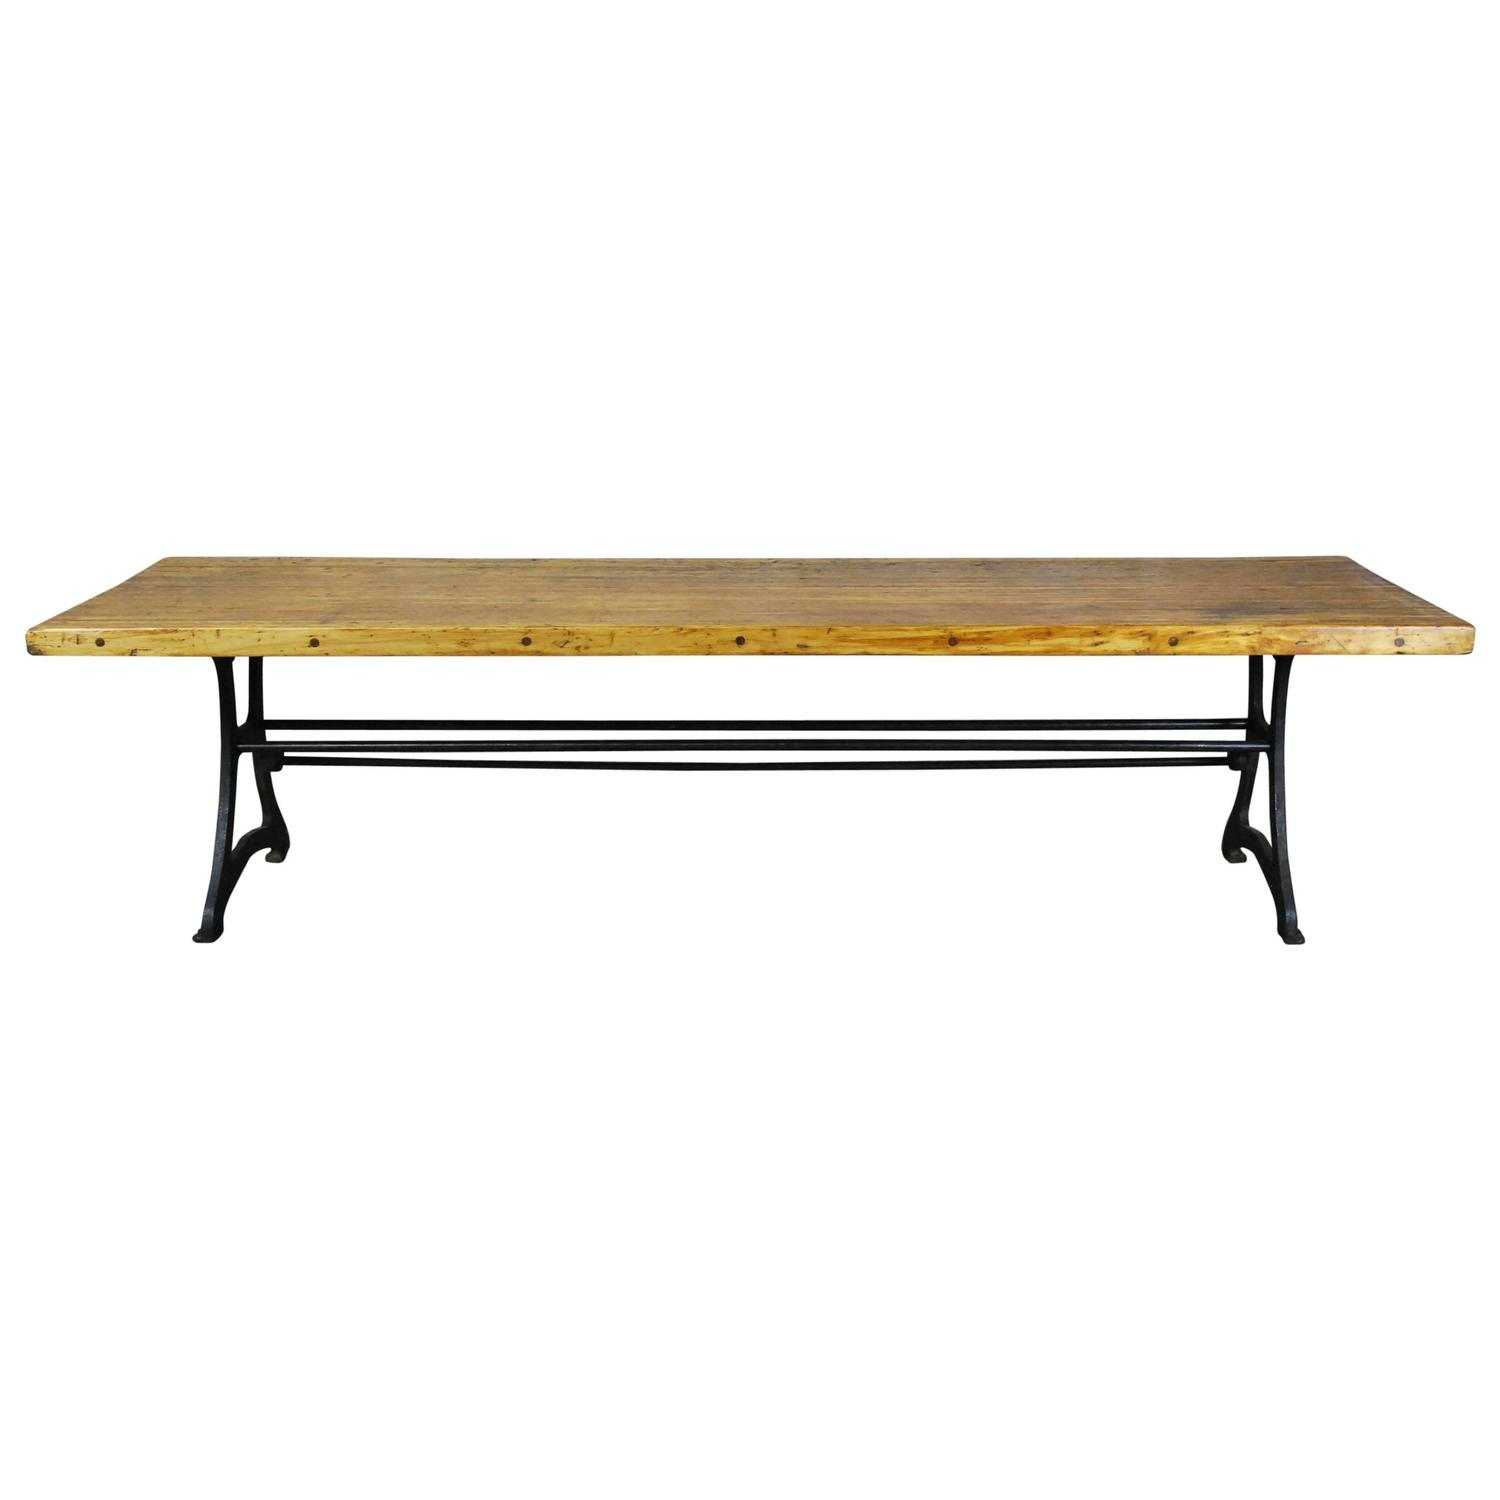 Industrial Dining Table For Sale at 1stdibs : 4867703z from www.1stdibs.com size 1500 x 1500 jpeg 42kB